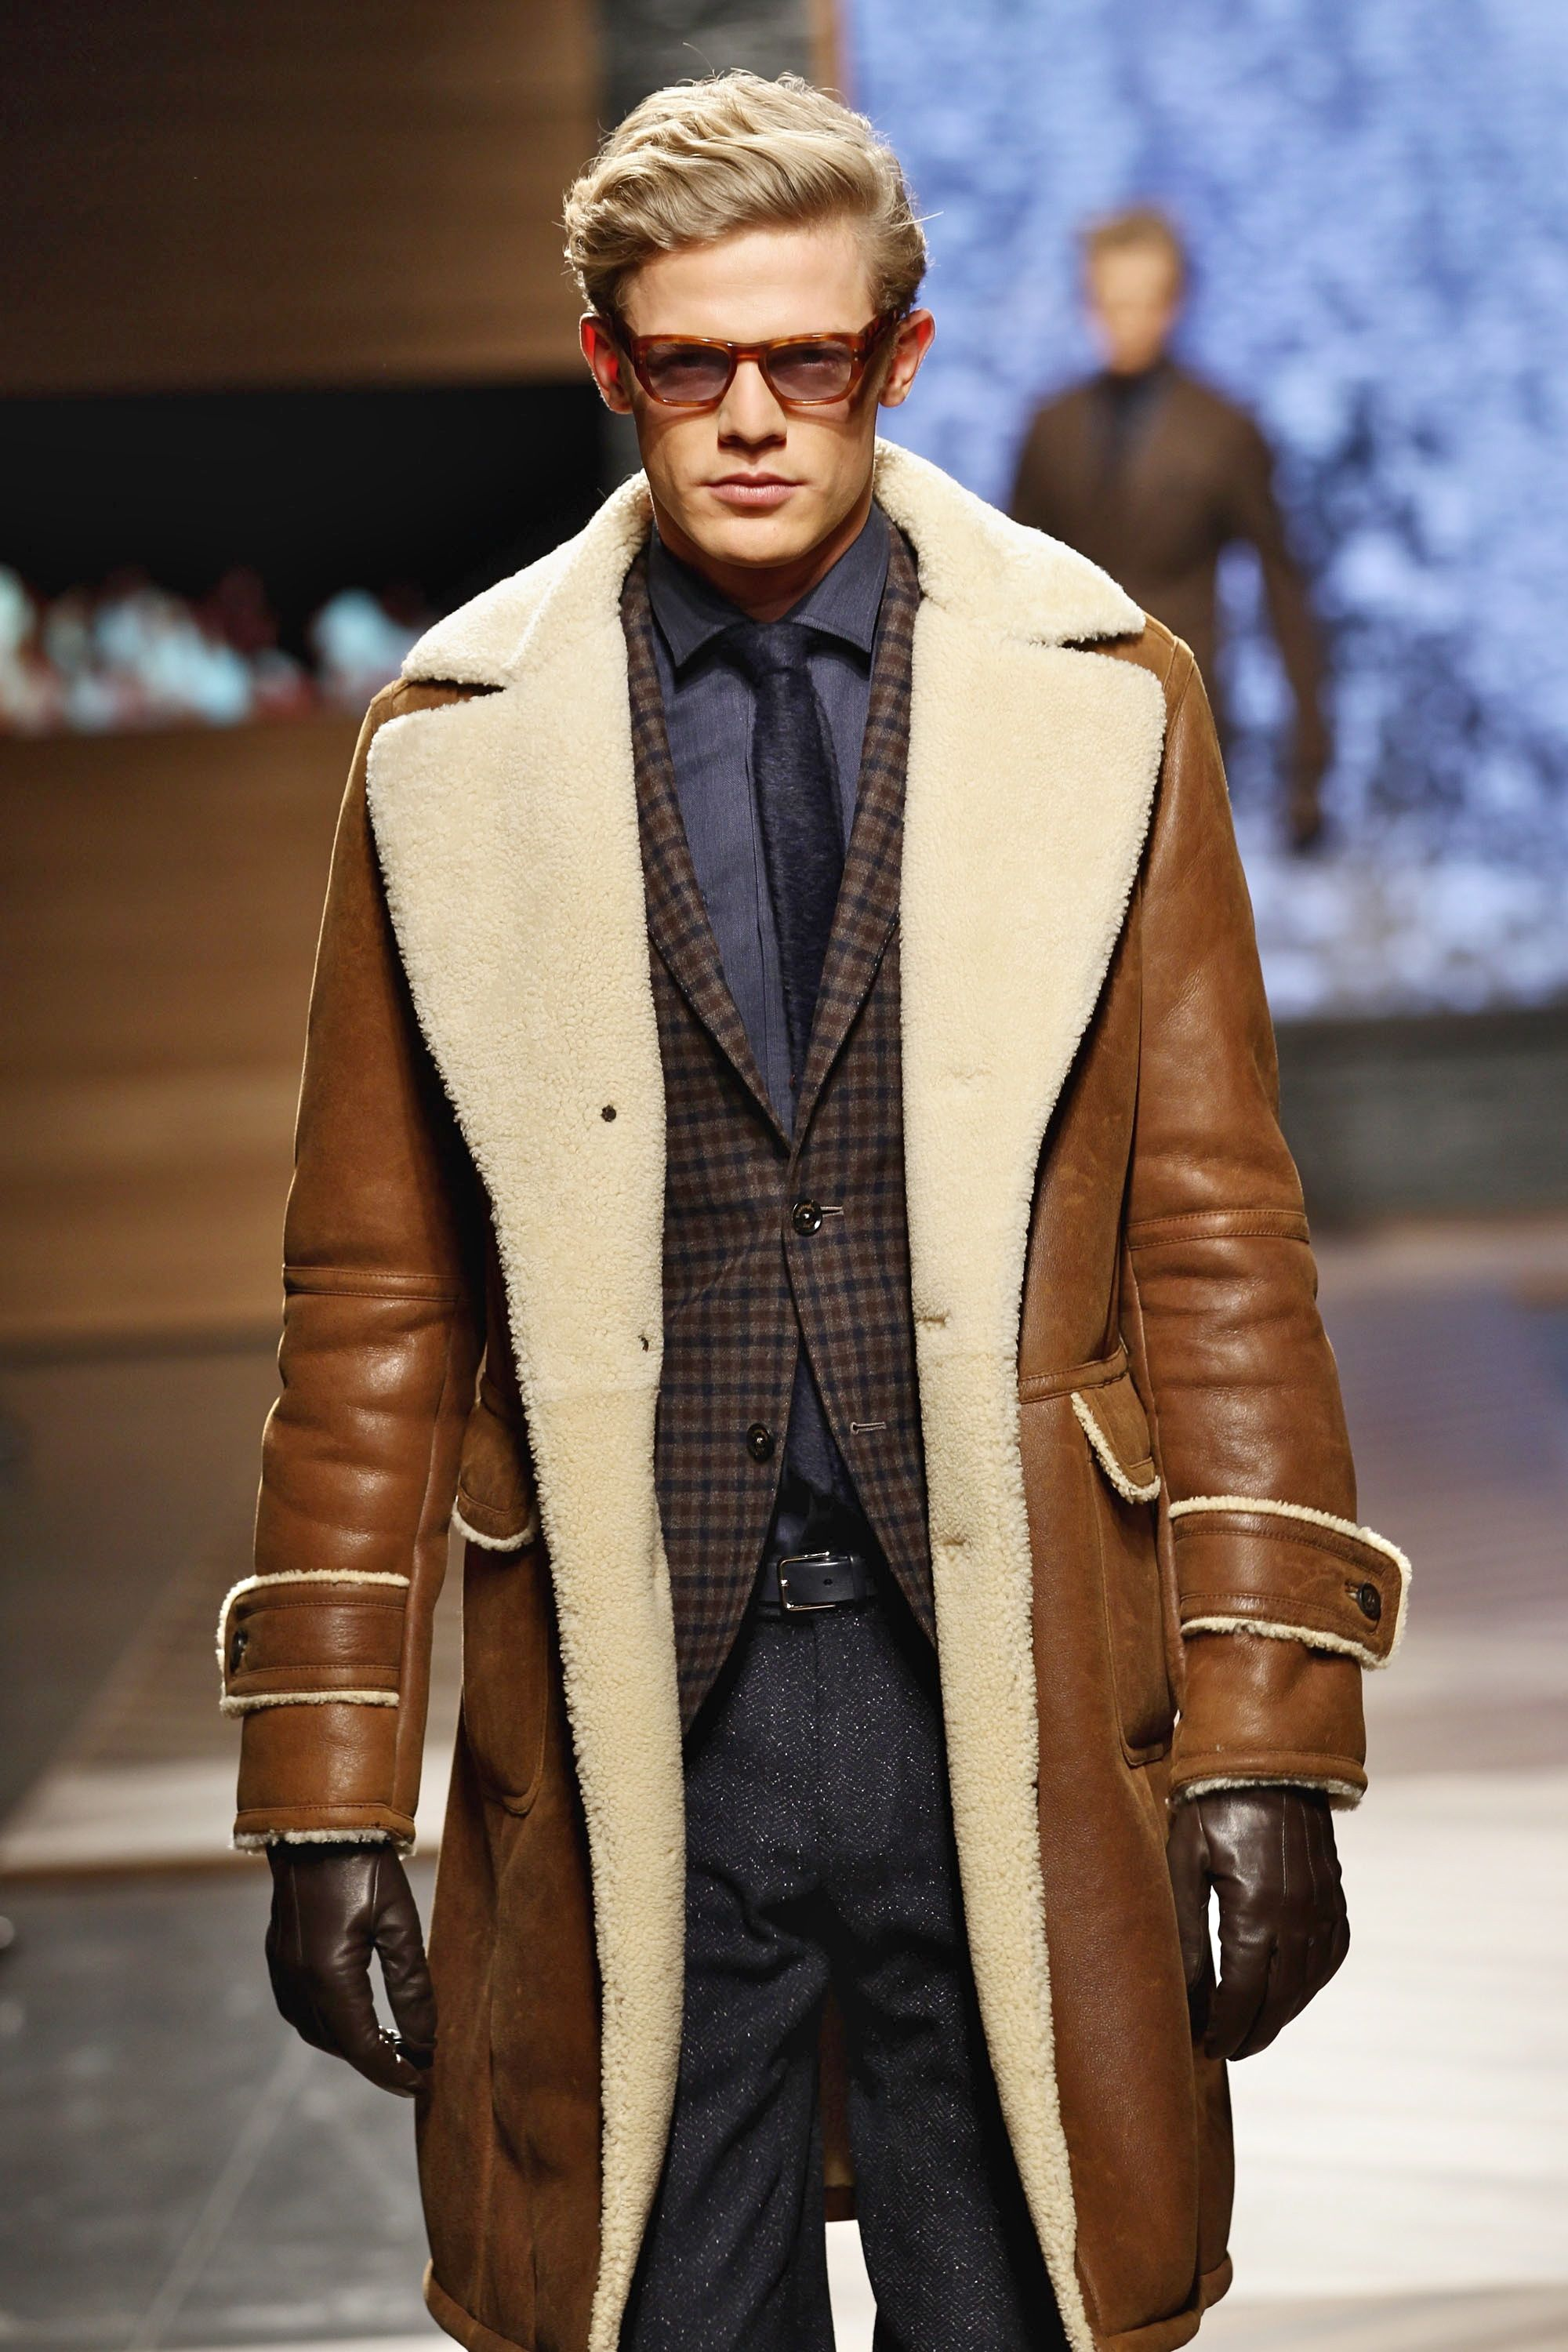 Men's Leather Coats and Jackets for Fall | Sheepskin coat, Aviator ...